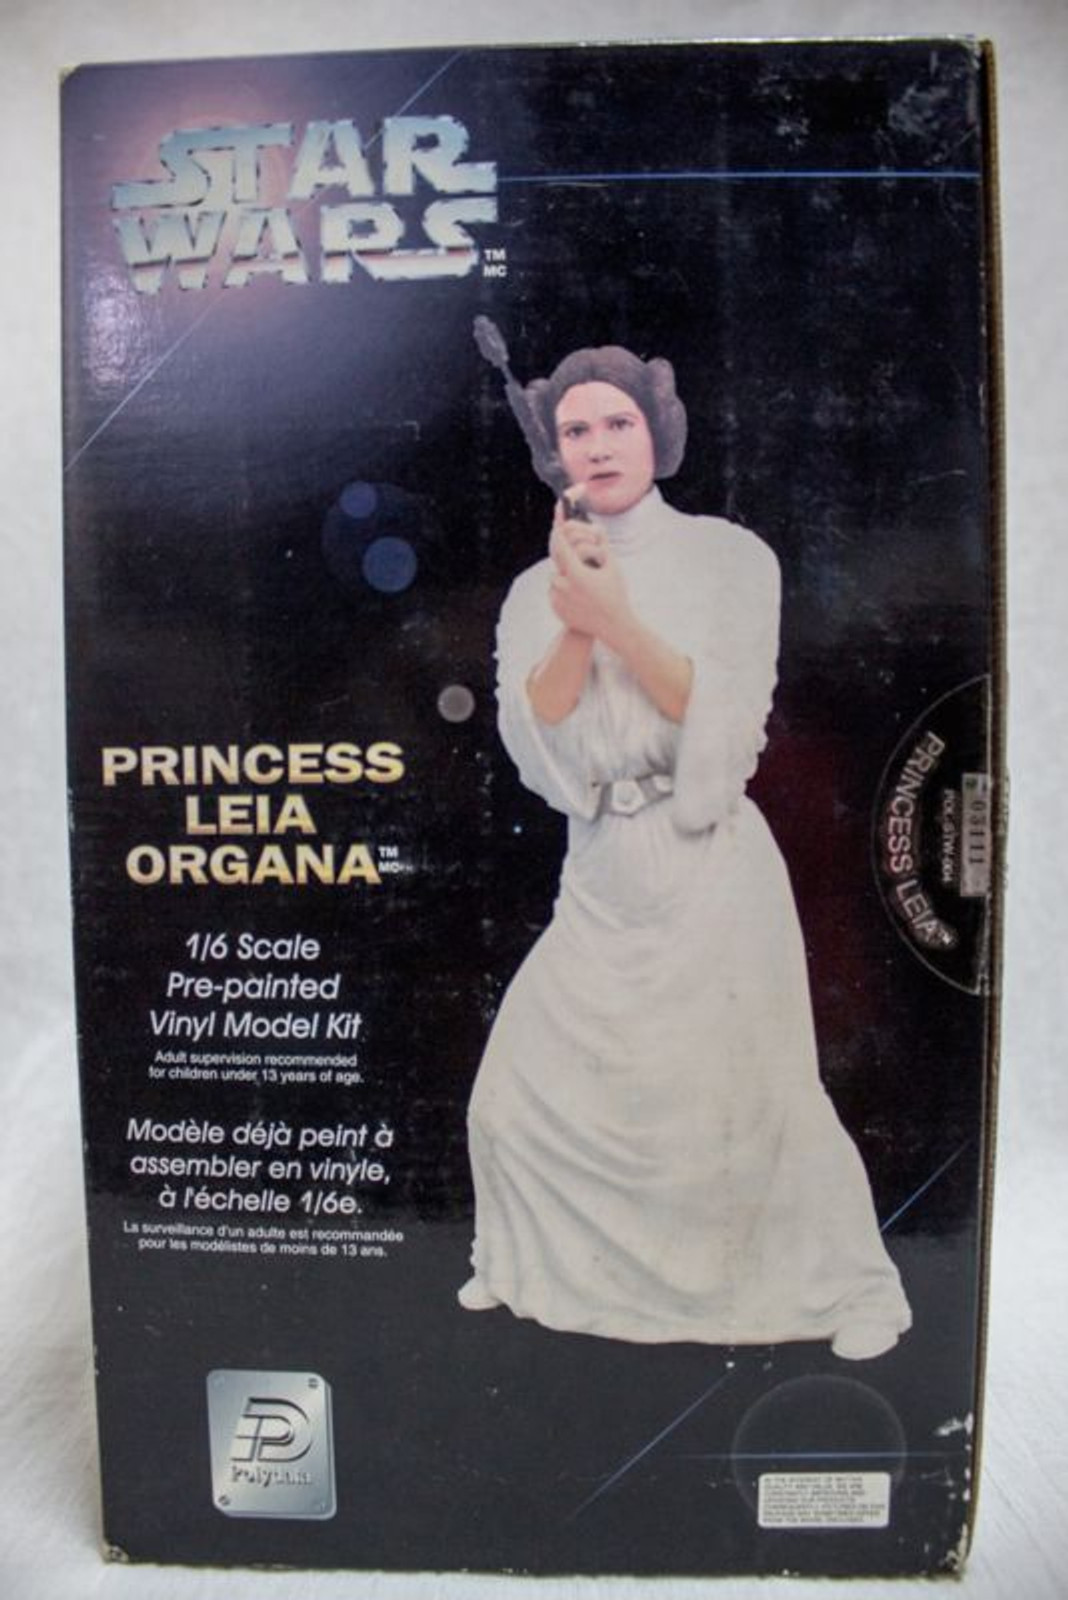 STAR WARS 1/6 scale pre-painted Vinyl Model Kit Princess Leia Organa Figure